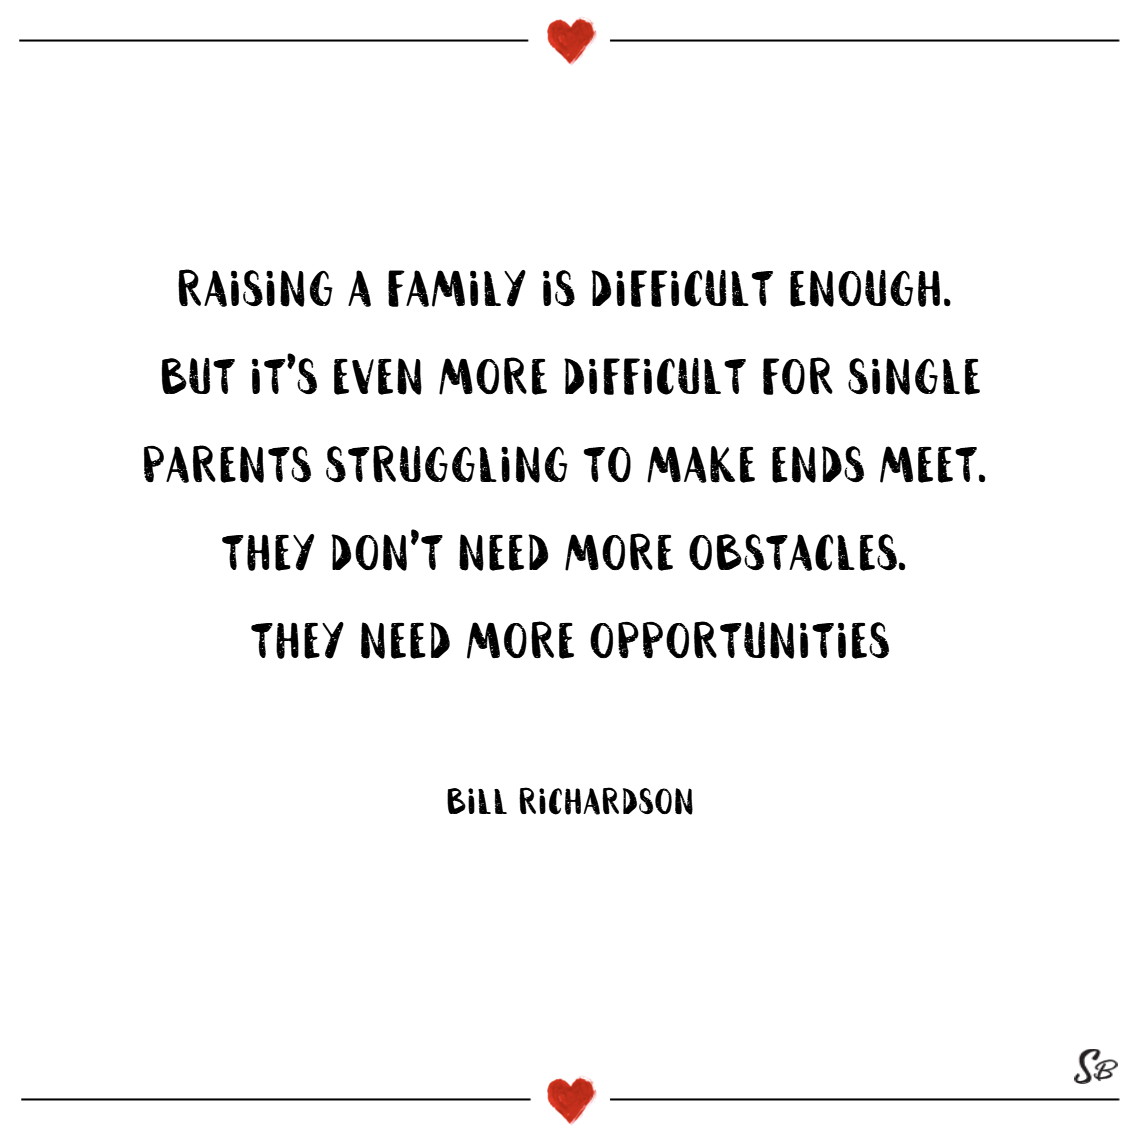 Raising a family is difficult enough. but it's even more difficult for single parents struggling to make ends meet. they don't need more obstacles. they need more opportunities. – bill richardson